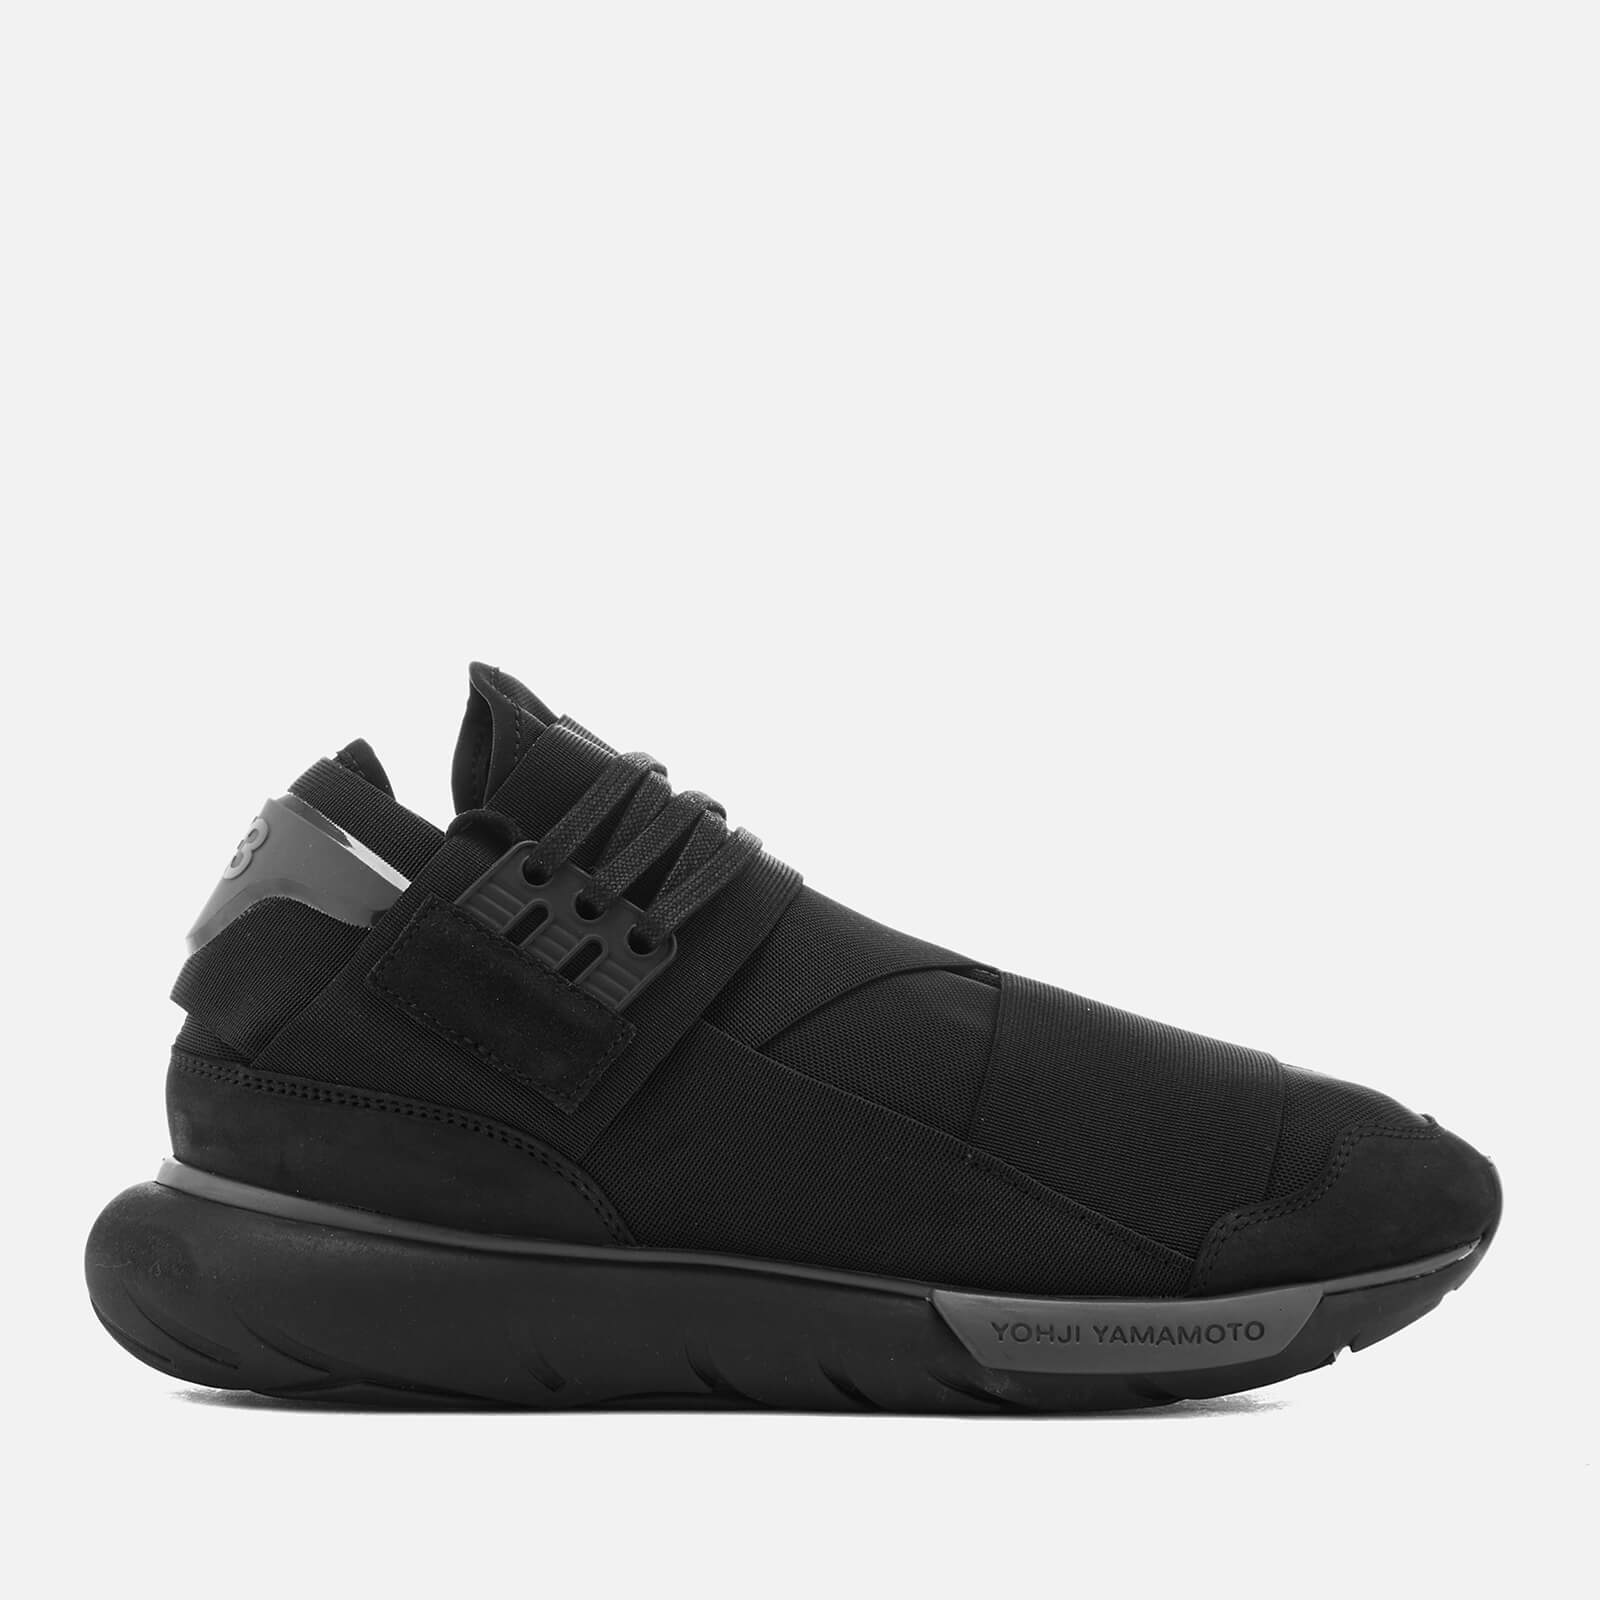 57082224e0749 Y-3 Men s Qasa High Sneakers - Core Black Core Black - Free UK ...